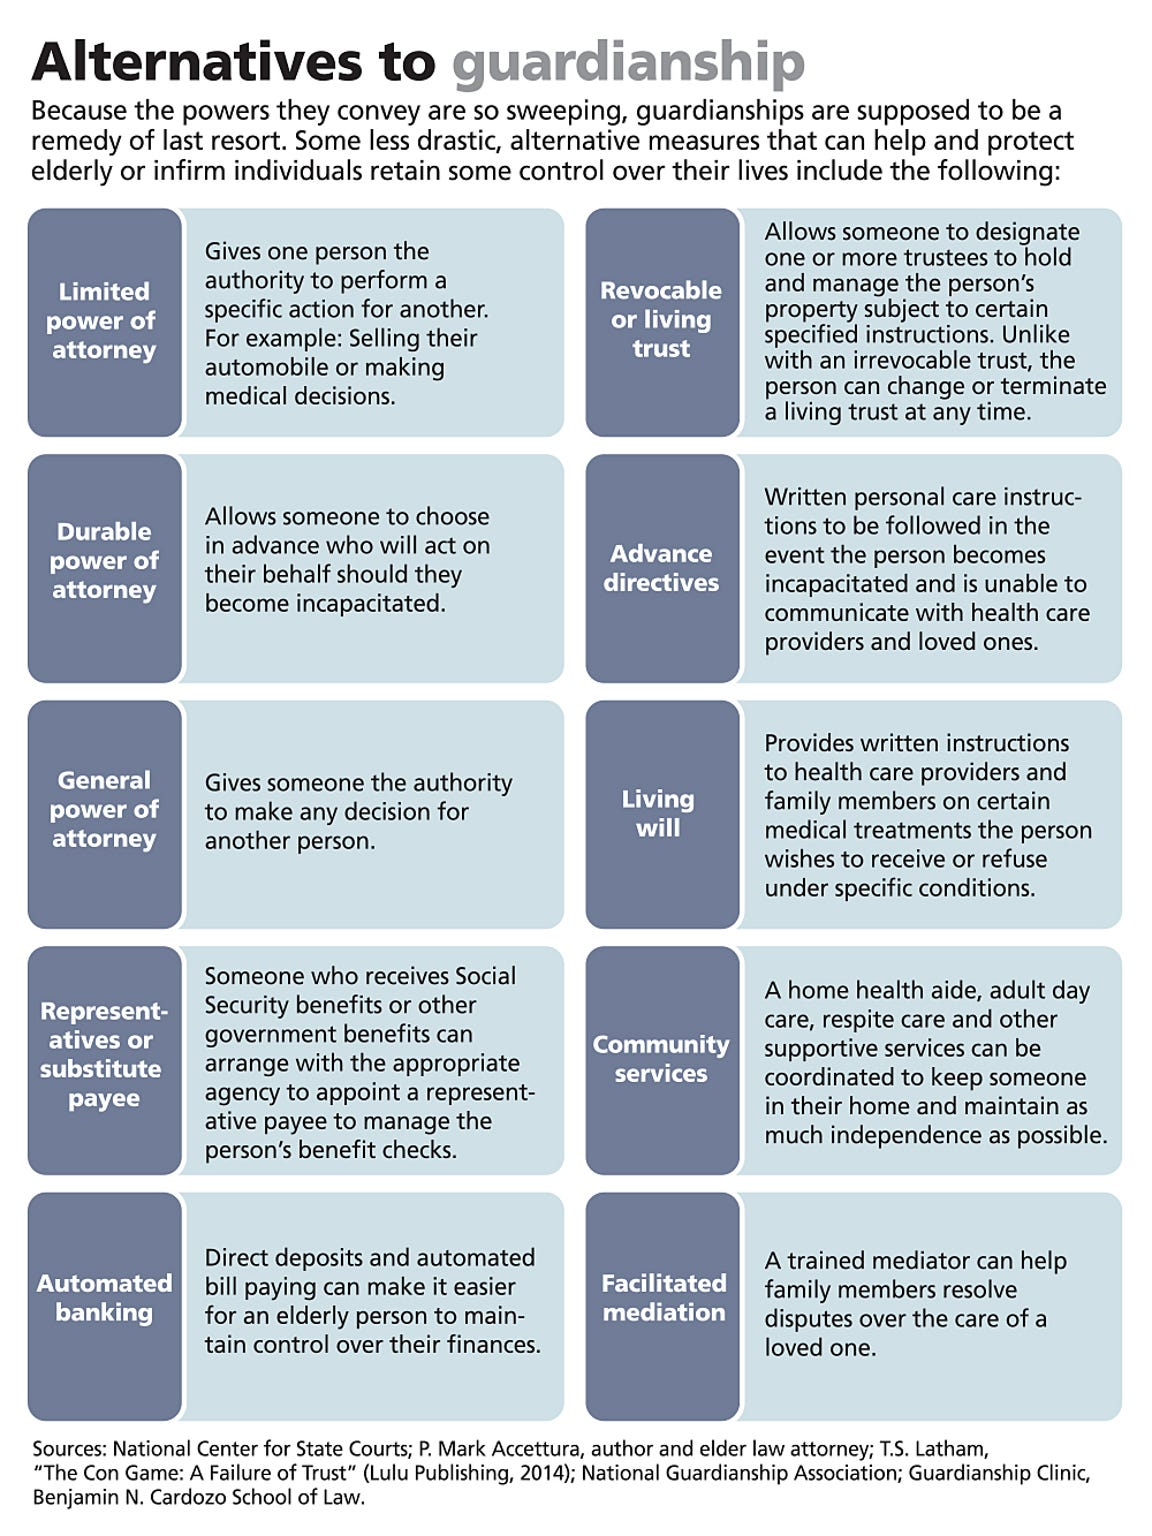 Alternatives to guardianship. Click to open and close.